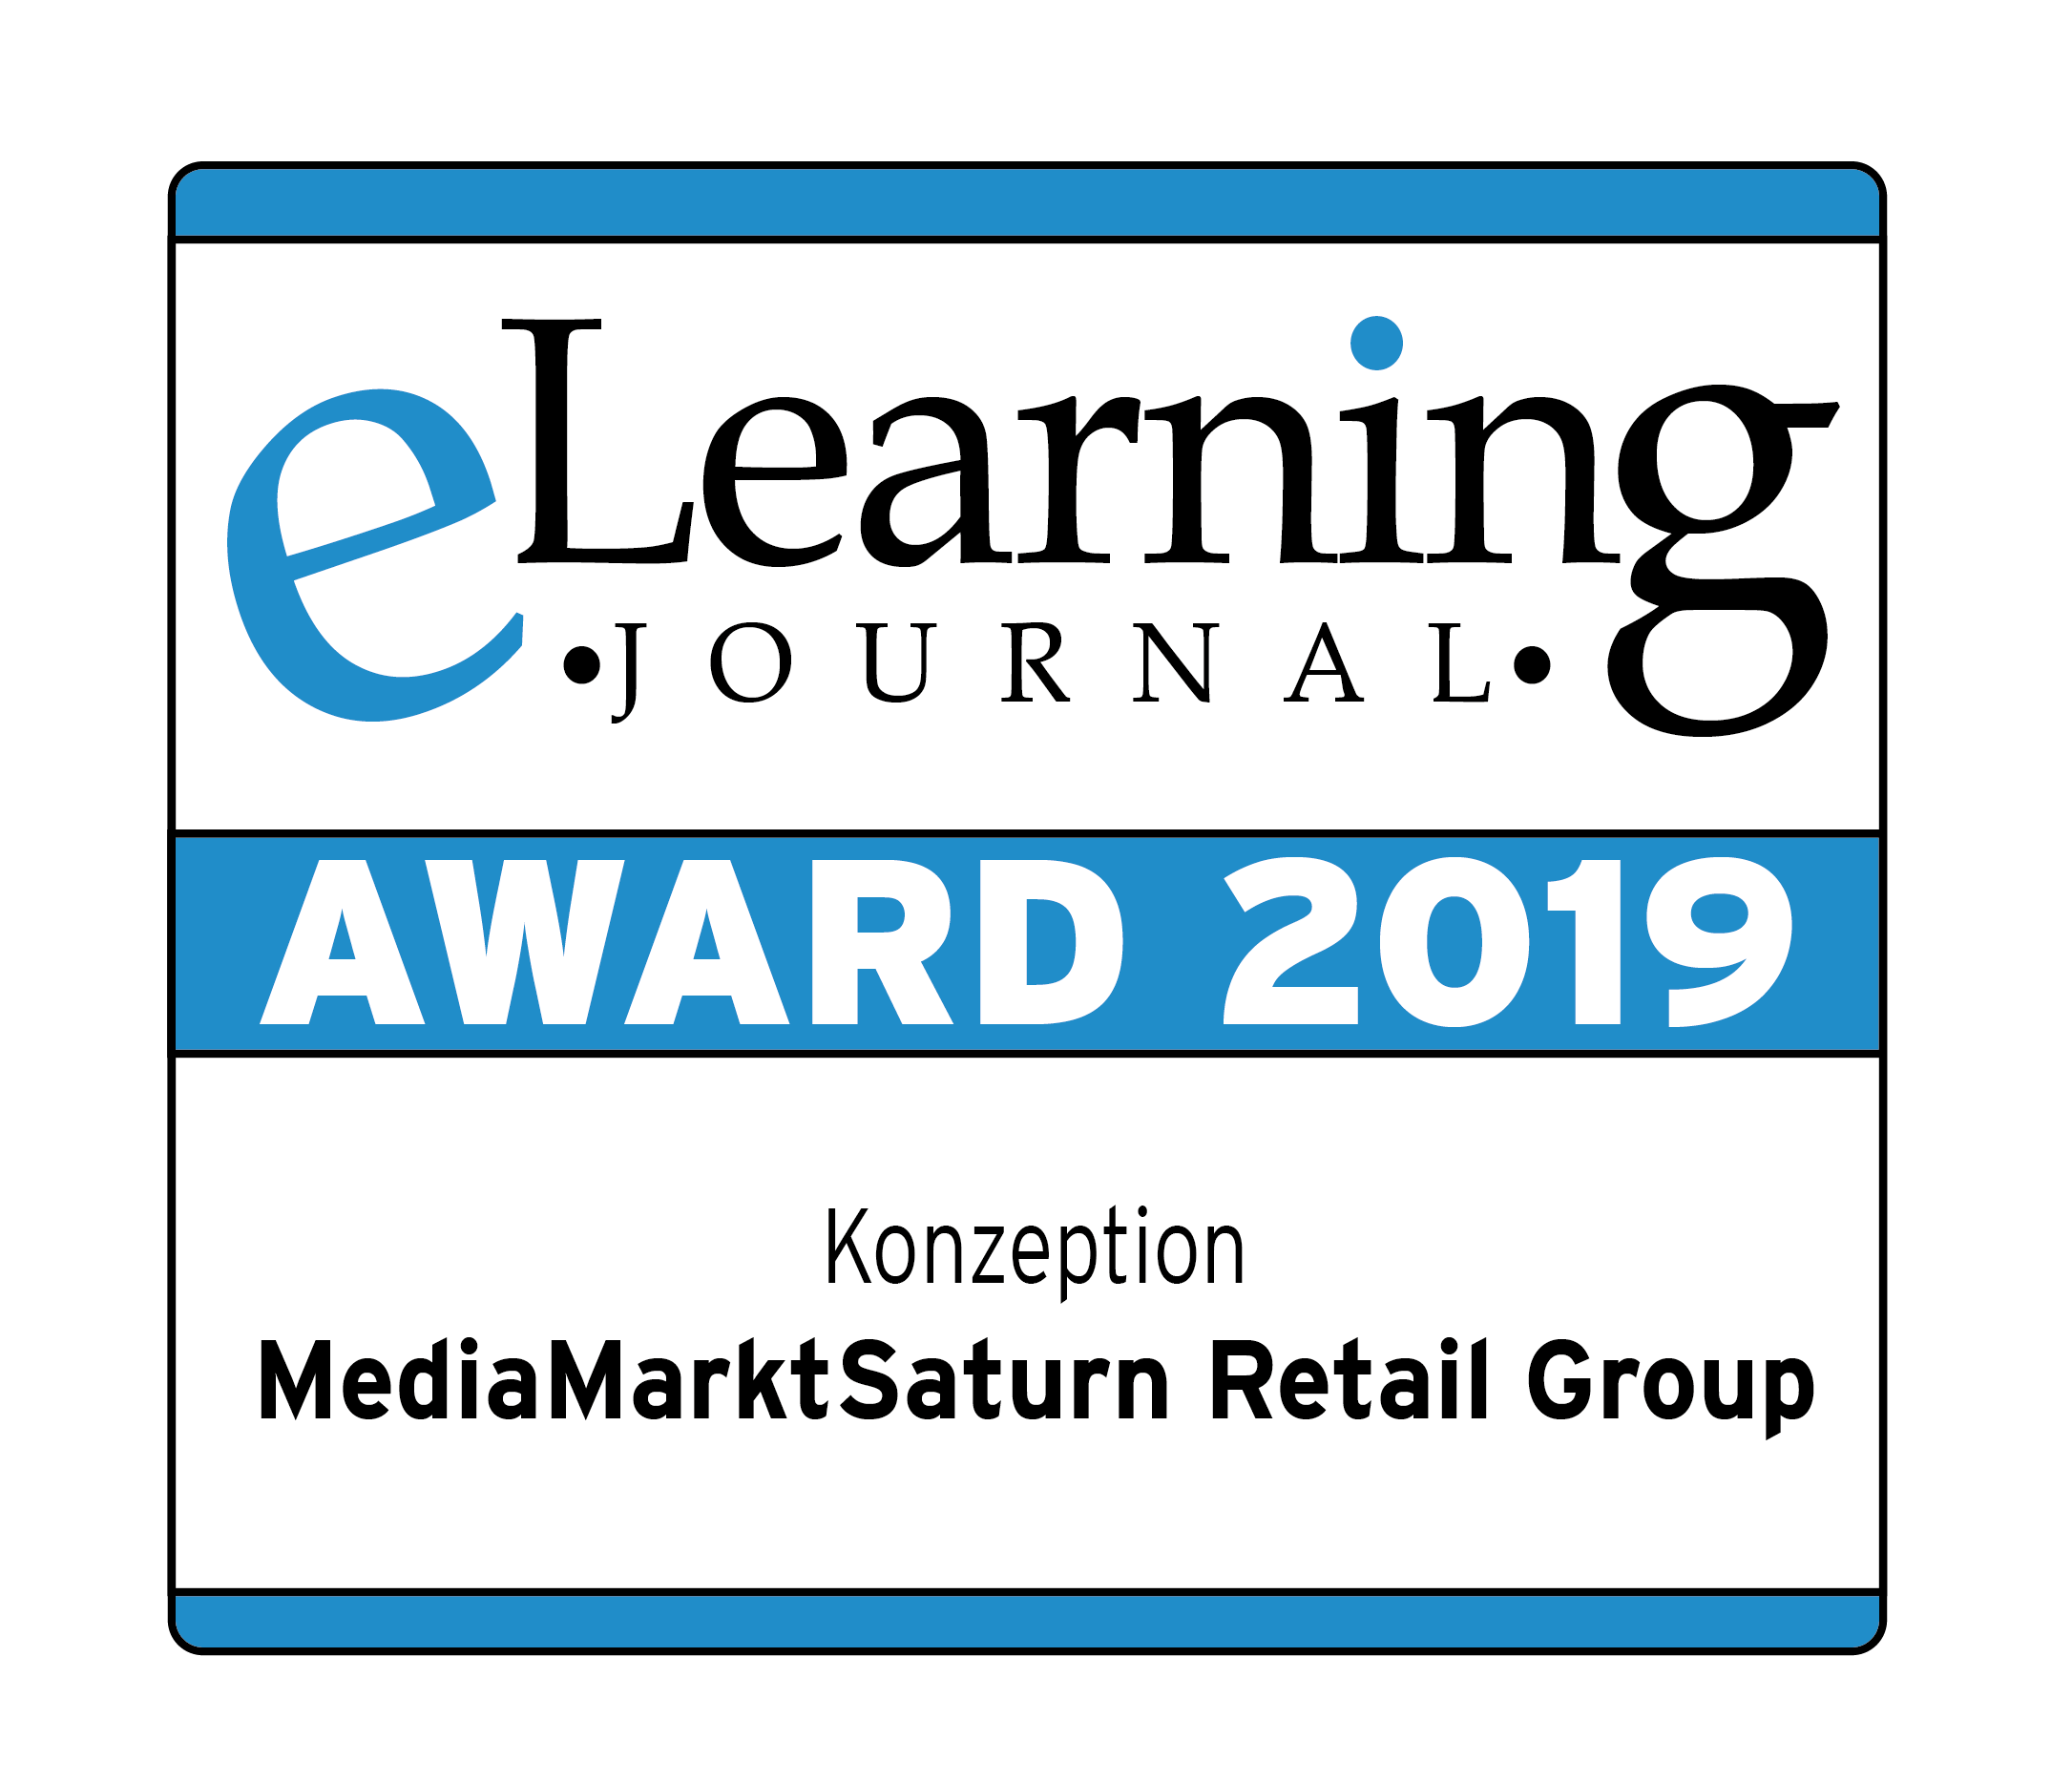 eLJ_AWARD2019_Konzeption_MediaMarktSaturn.png